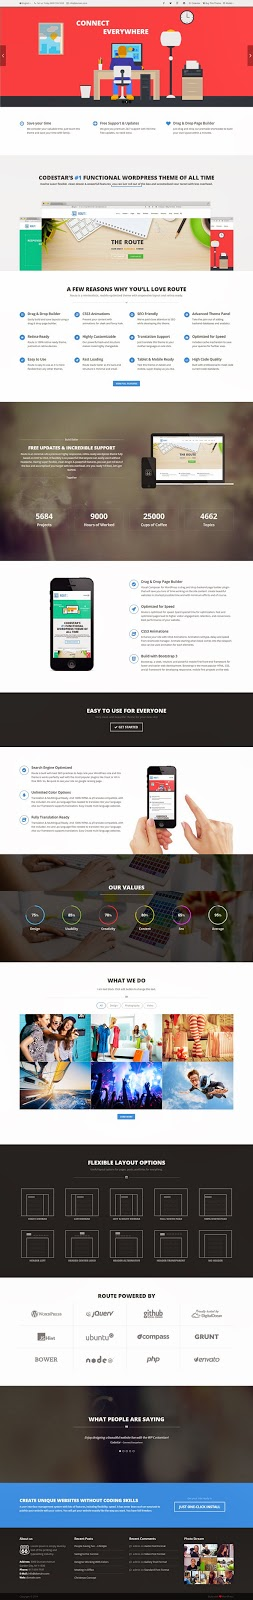 Best multipurpose wp theme